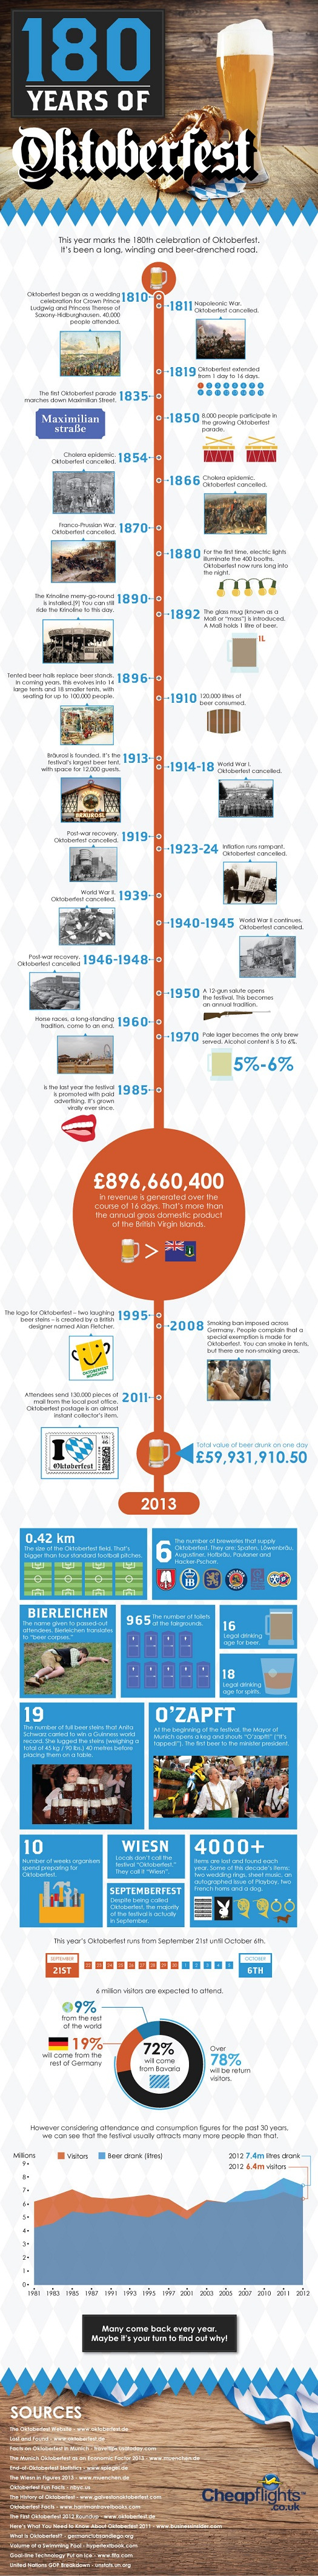 180-years-of-oktoberfest-infographic_525e6e2f979f1